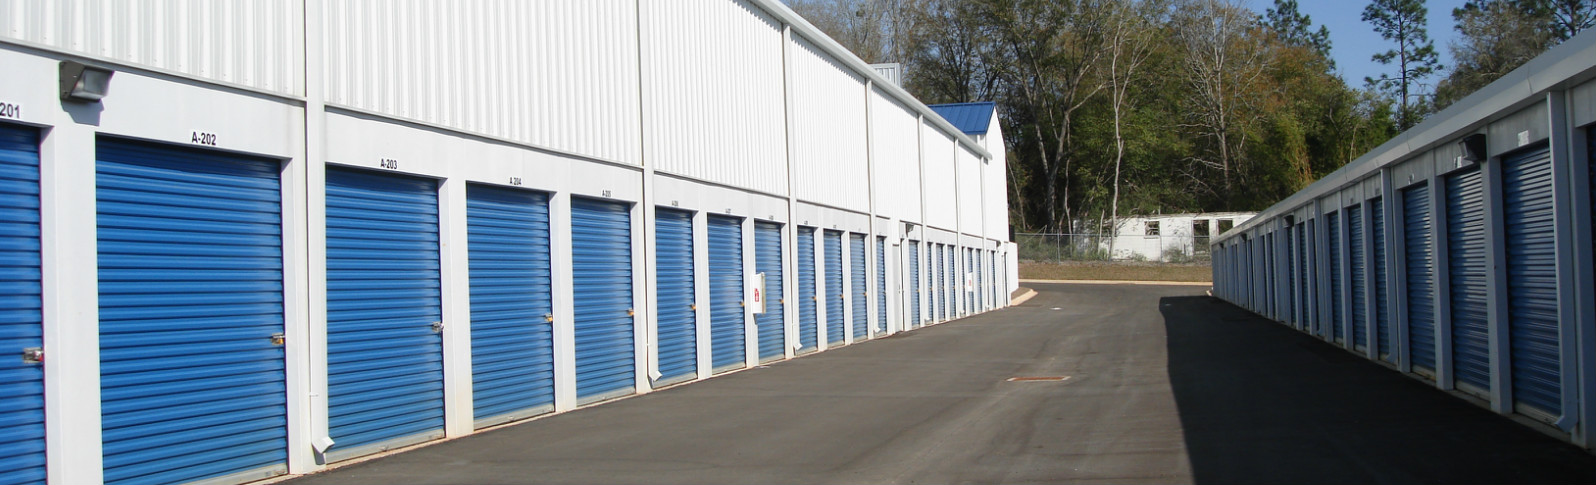 Crestview self storage features open driveways